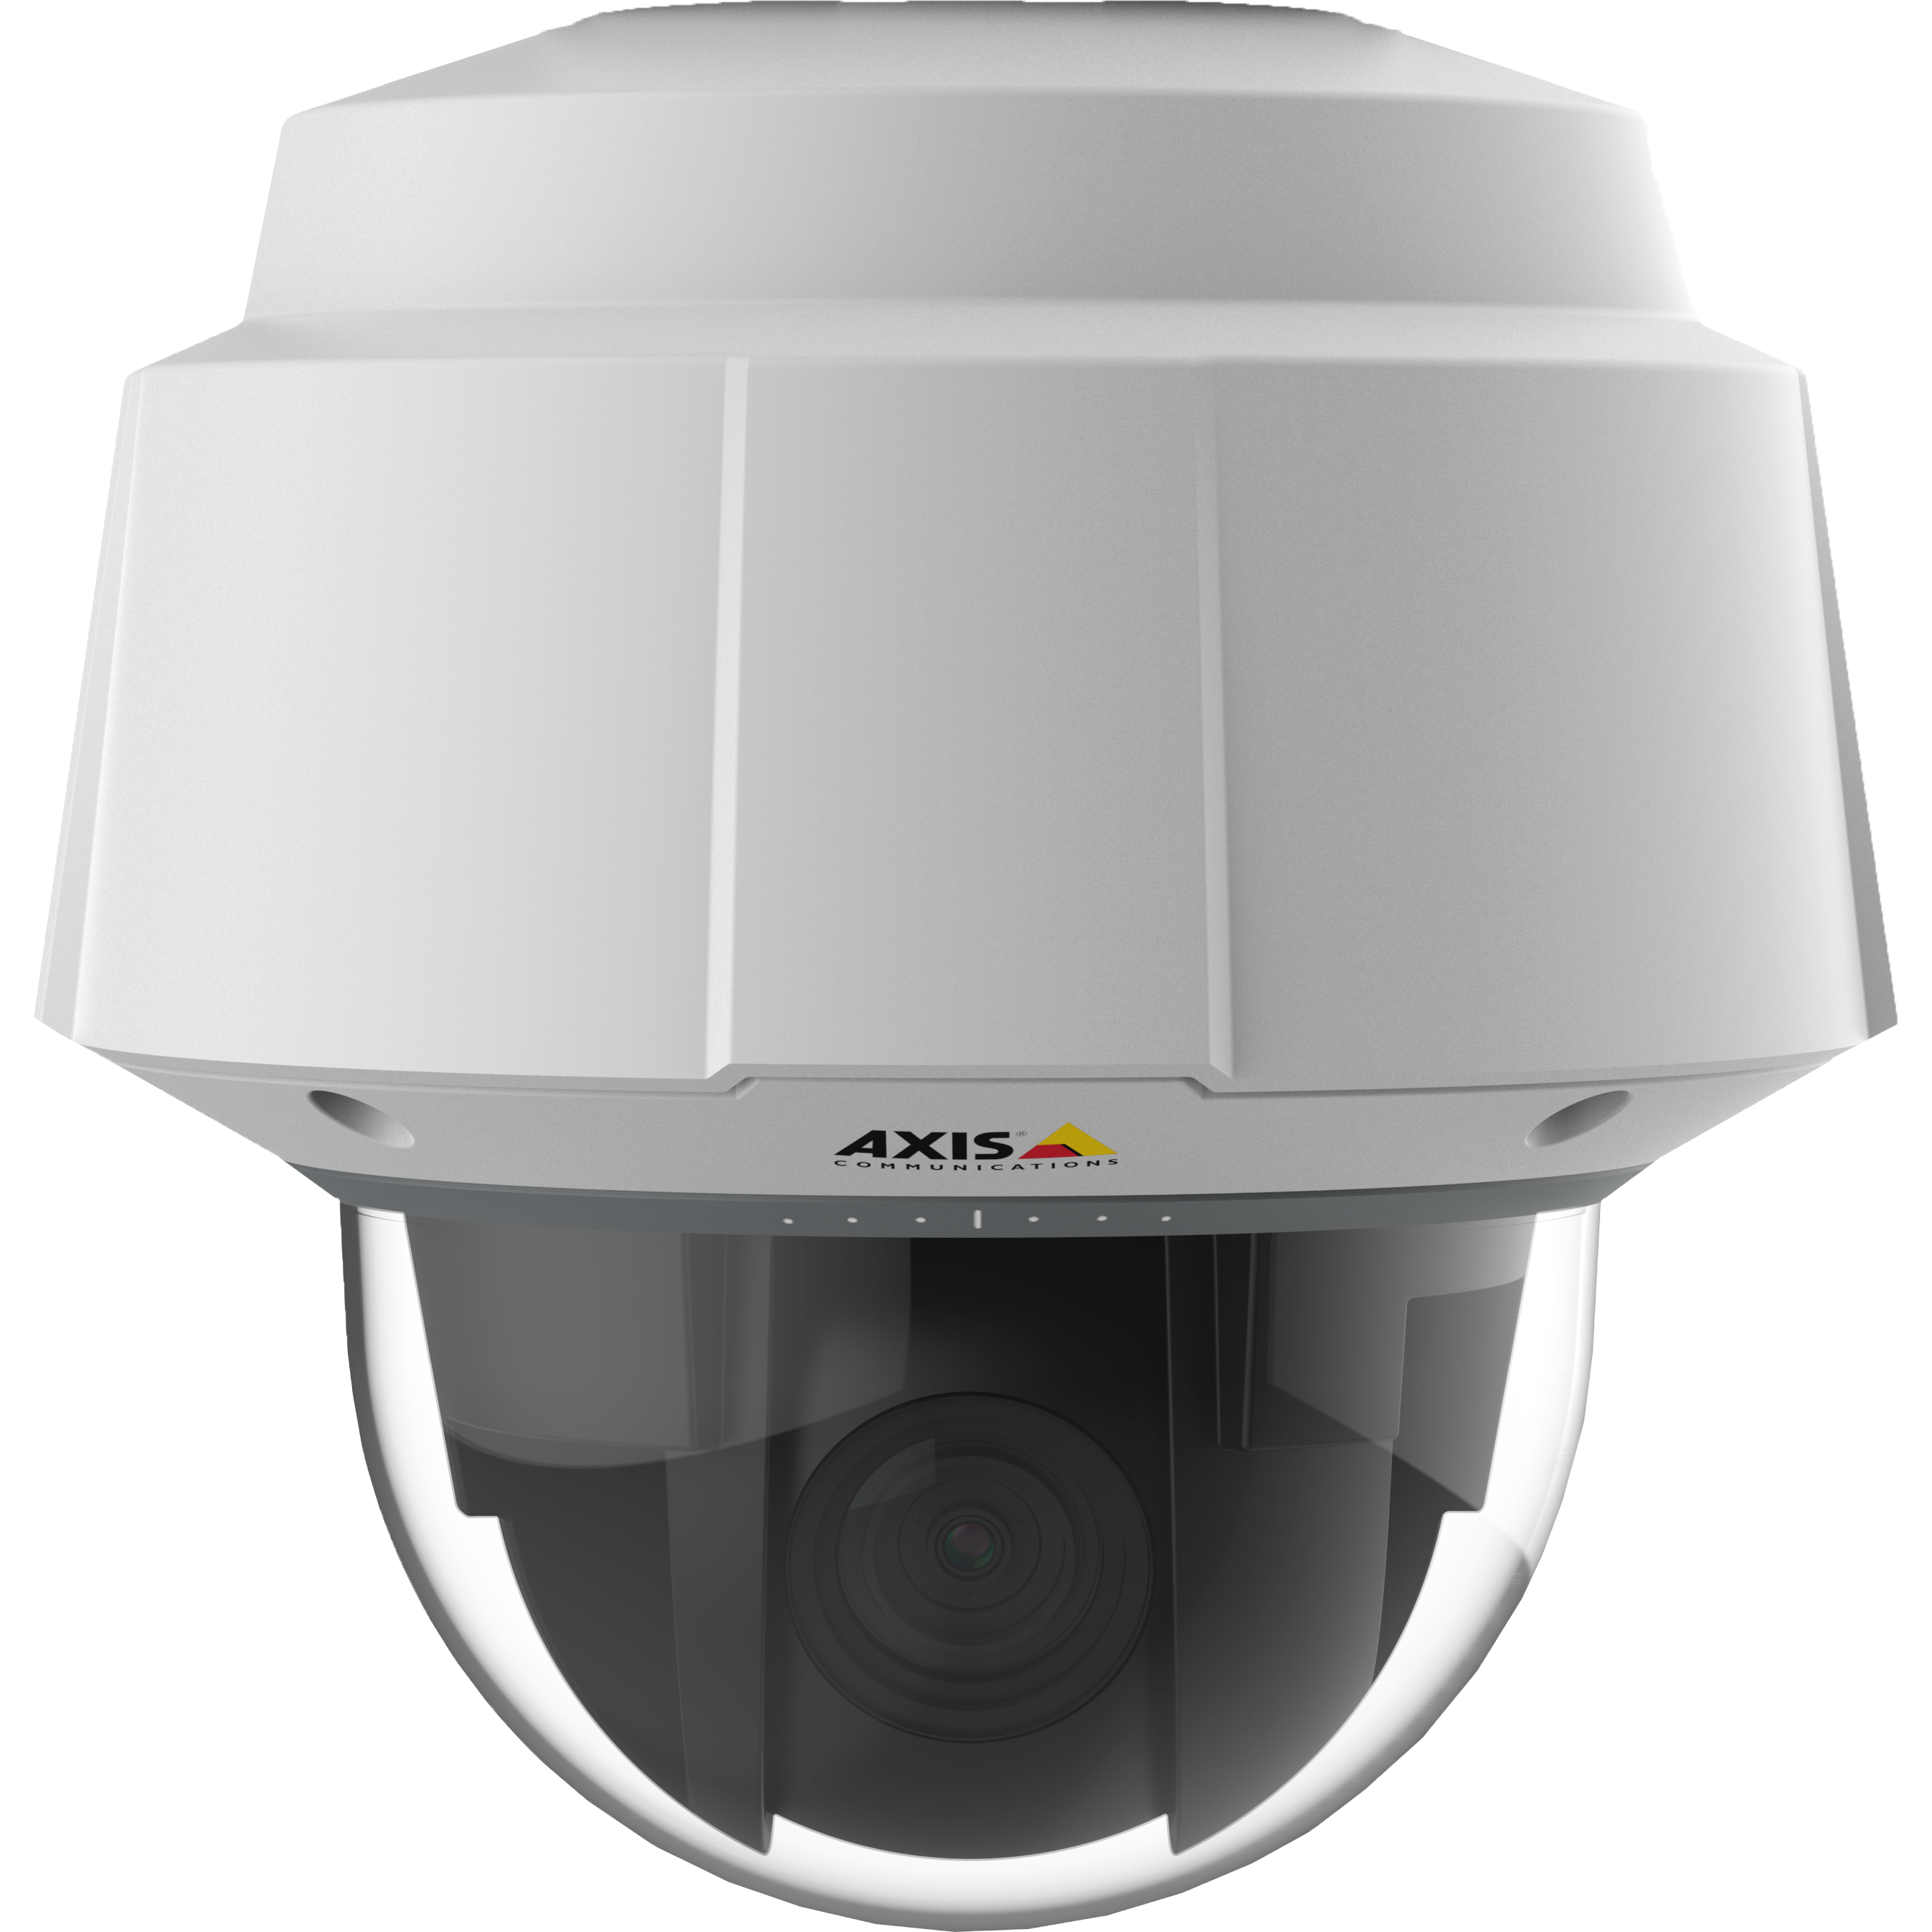 AXIS Q60 PTZ Network Camera Series | Axis Communications